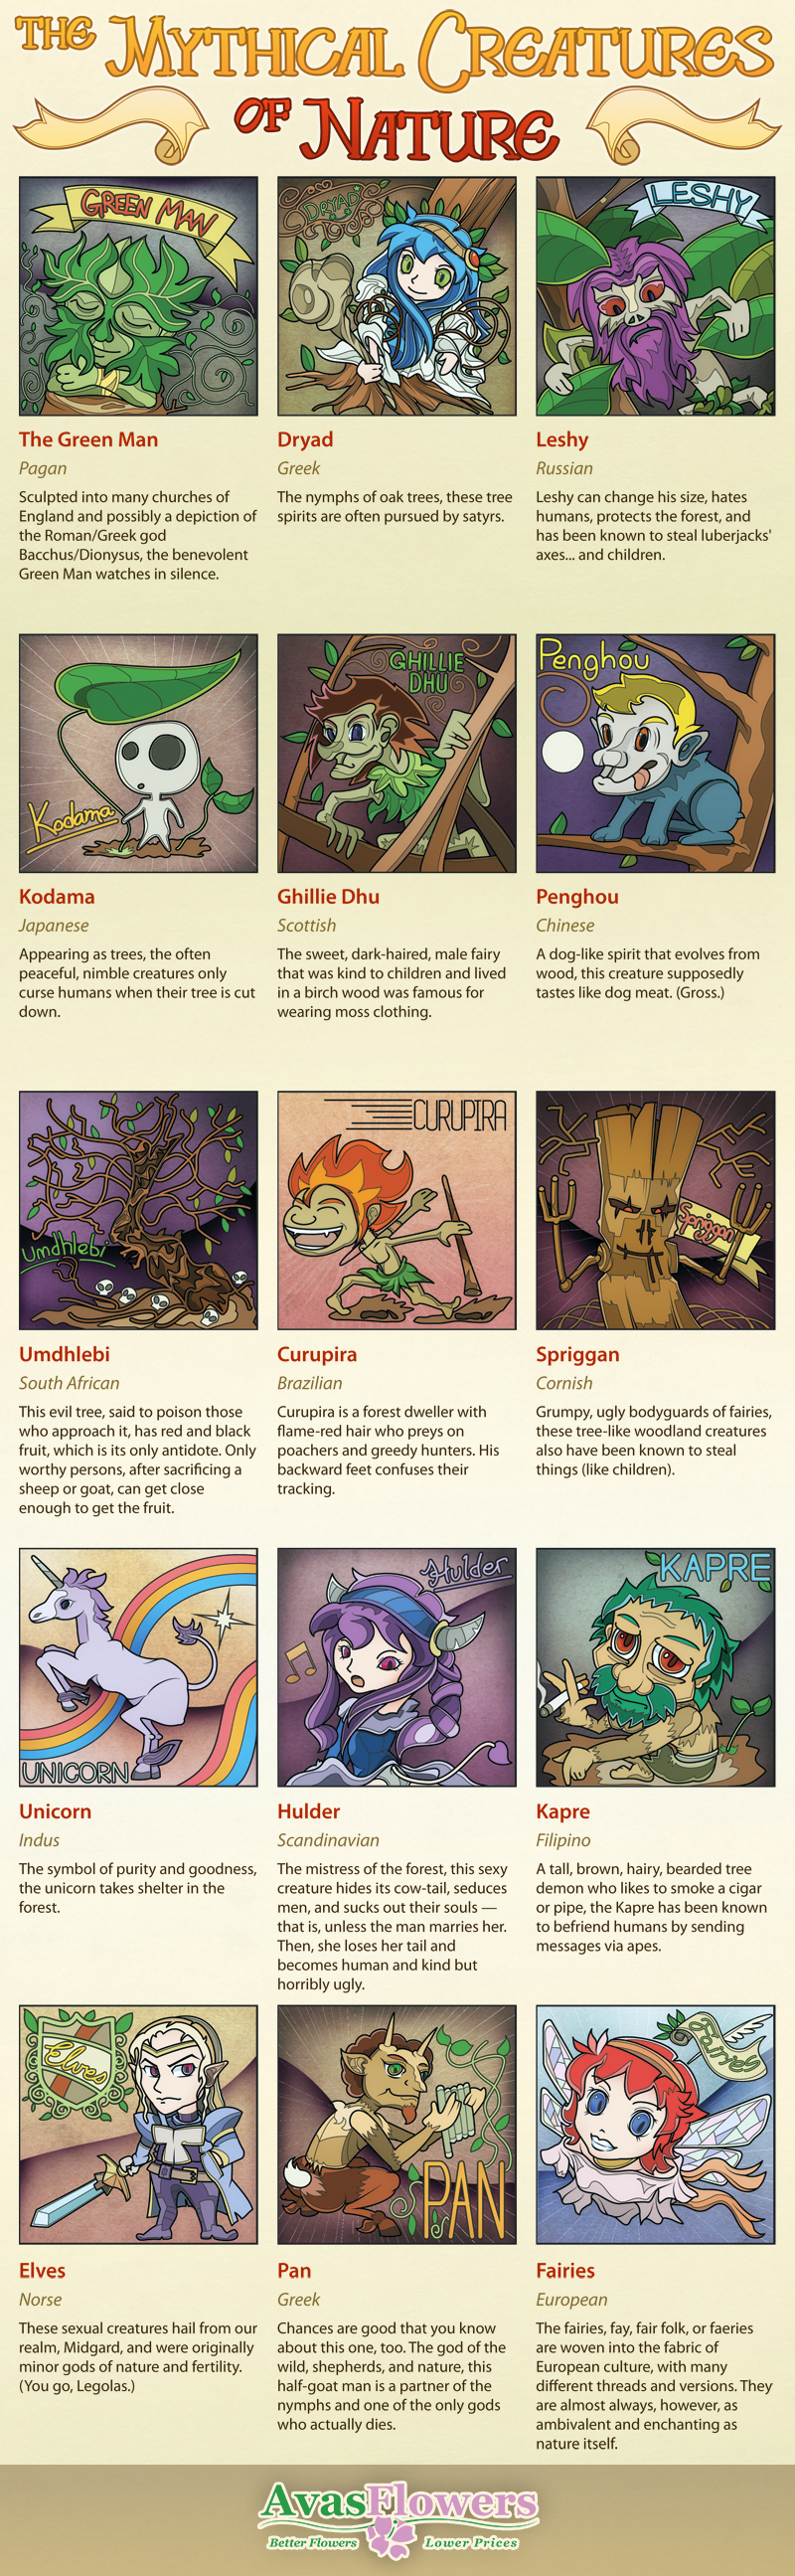 The Mythical Creatures of Nature - Avasflowers.net - Infographic